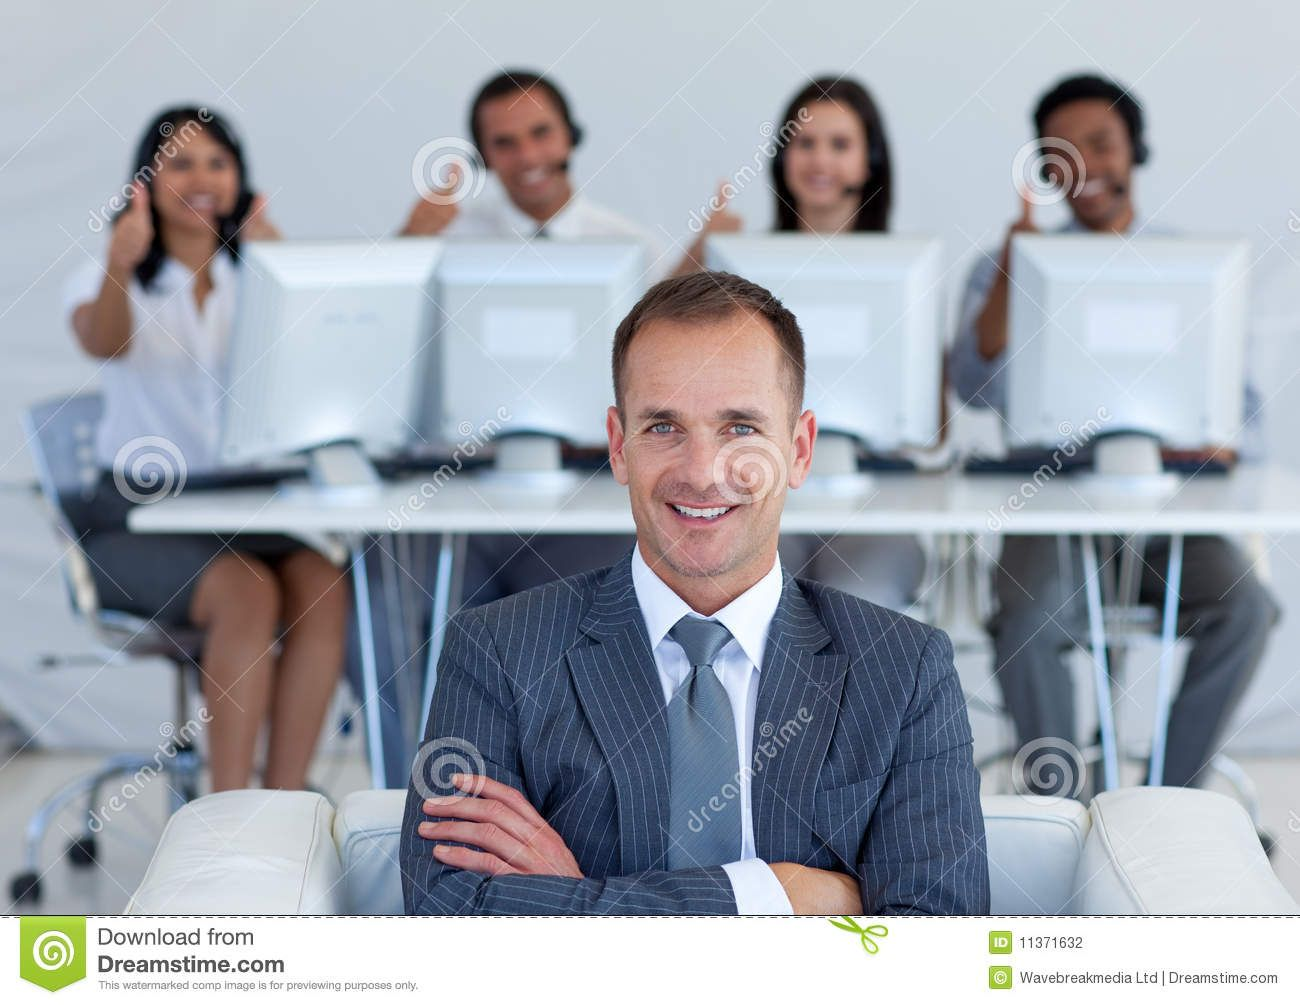 Manager In Call Center With His Team Smiling Manager In Call Center With His Te Sponsored Ad Ad Call Manager Te Cen Call Center Management Teams